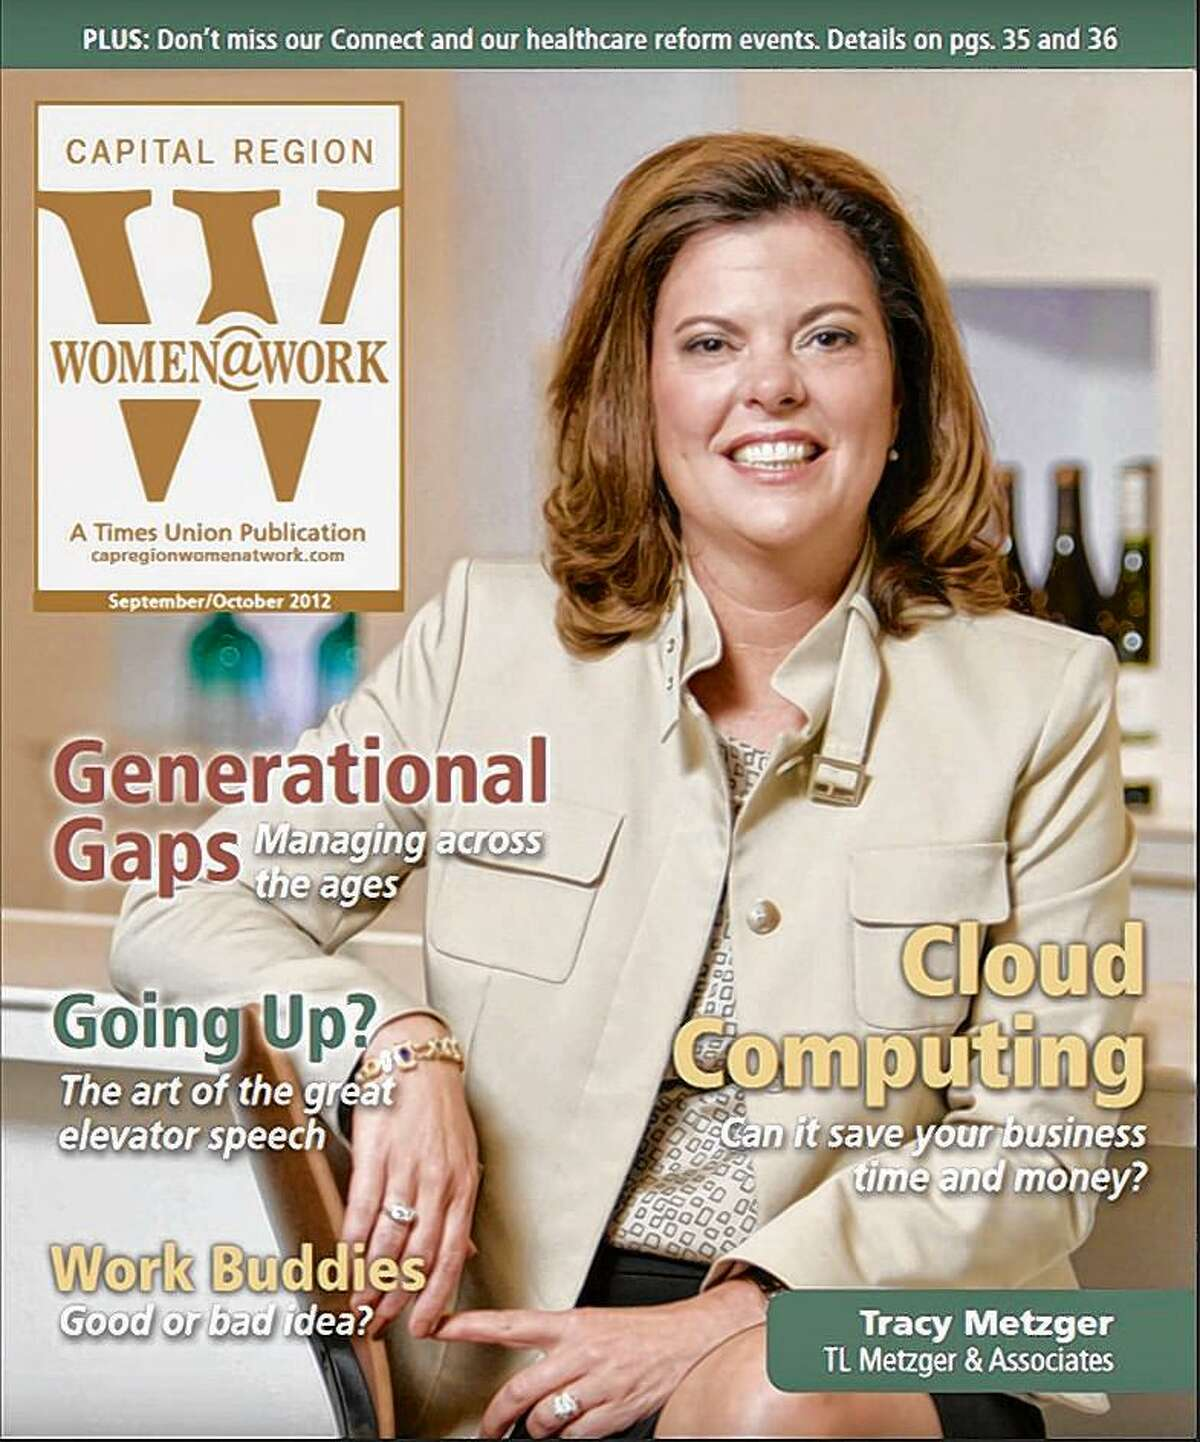 The Sept./Oct. 2012 cover of Women@Work.